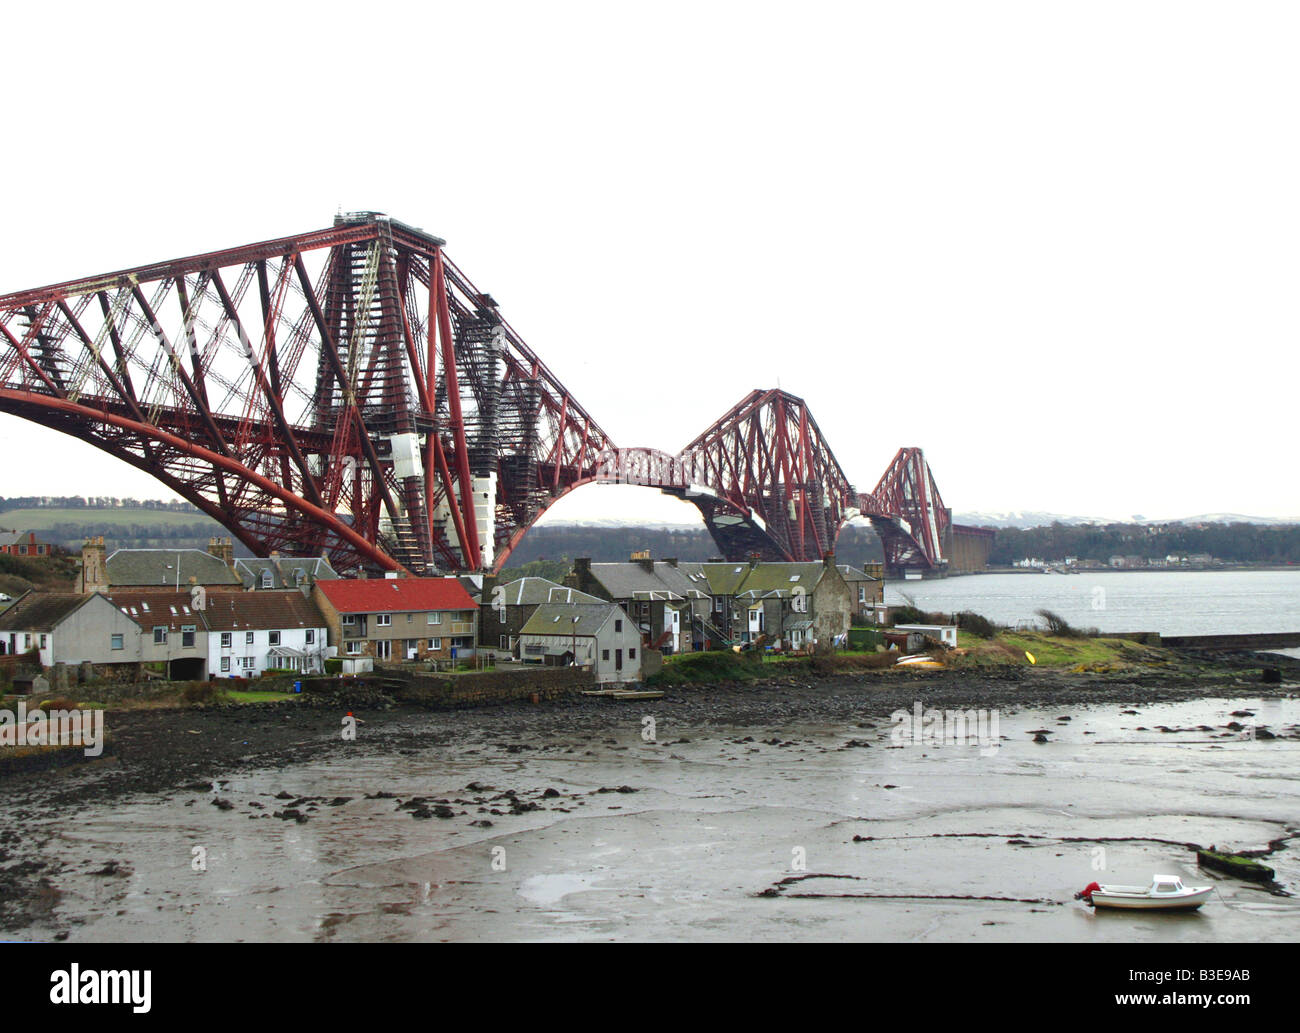 The 2.5 km. (1.5 mile) Forth Railway Bridge, the world's first major steel bridge, with its gigantic girder spans - Stock Image